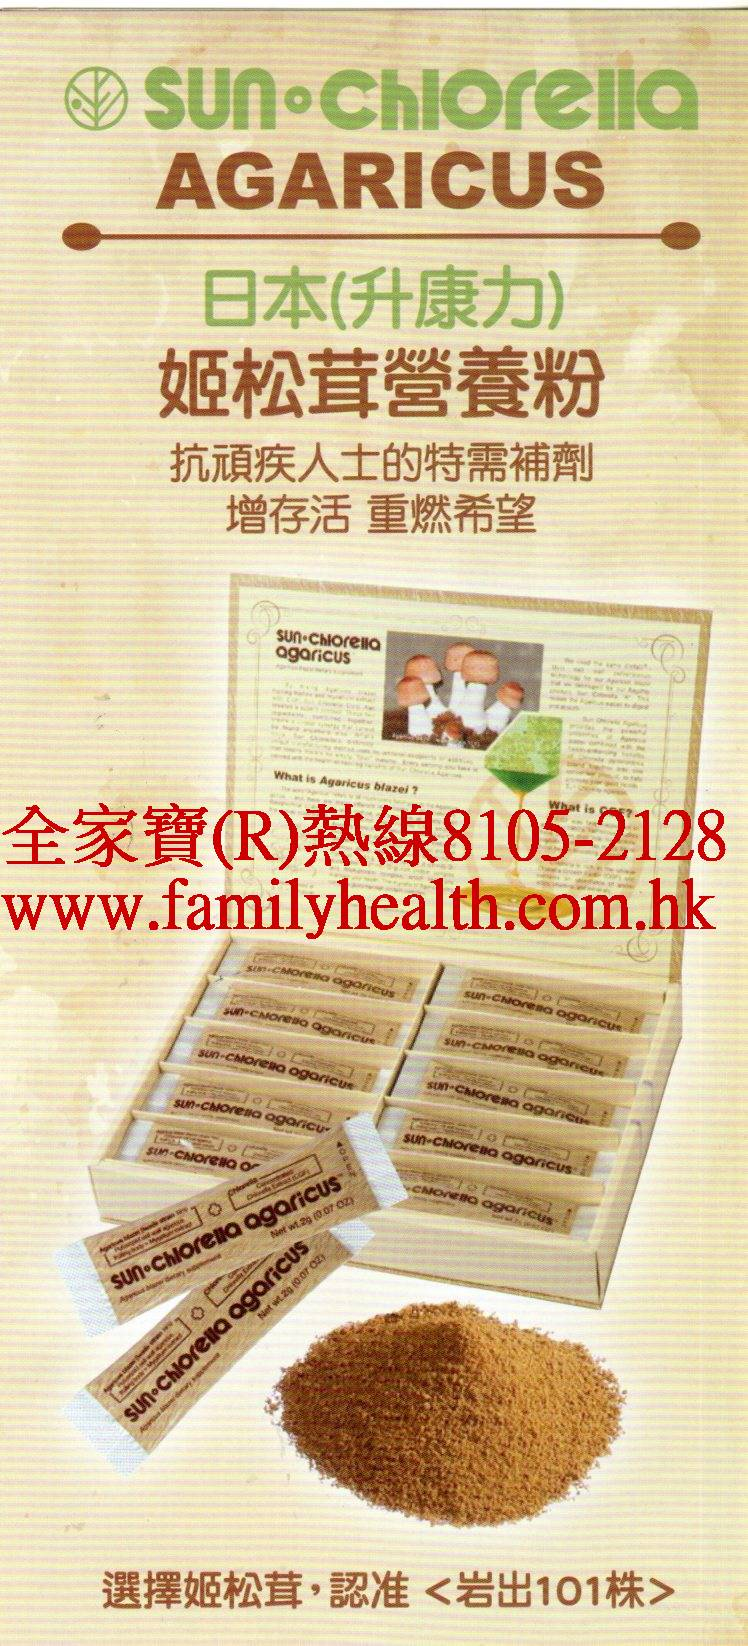 http://www.familyhealth.com.hk/files/full/1036_0.jpg